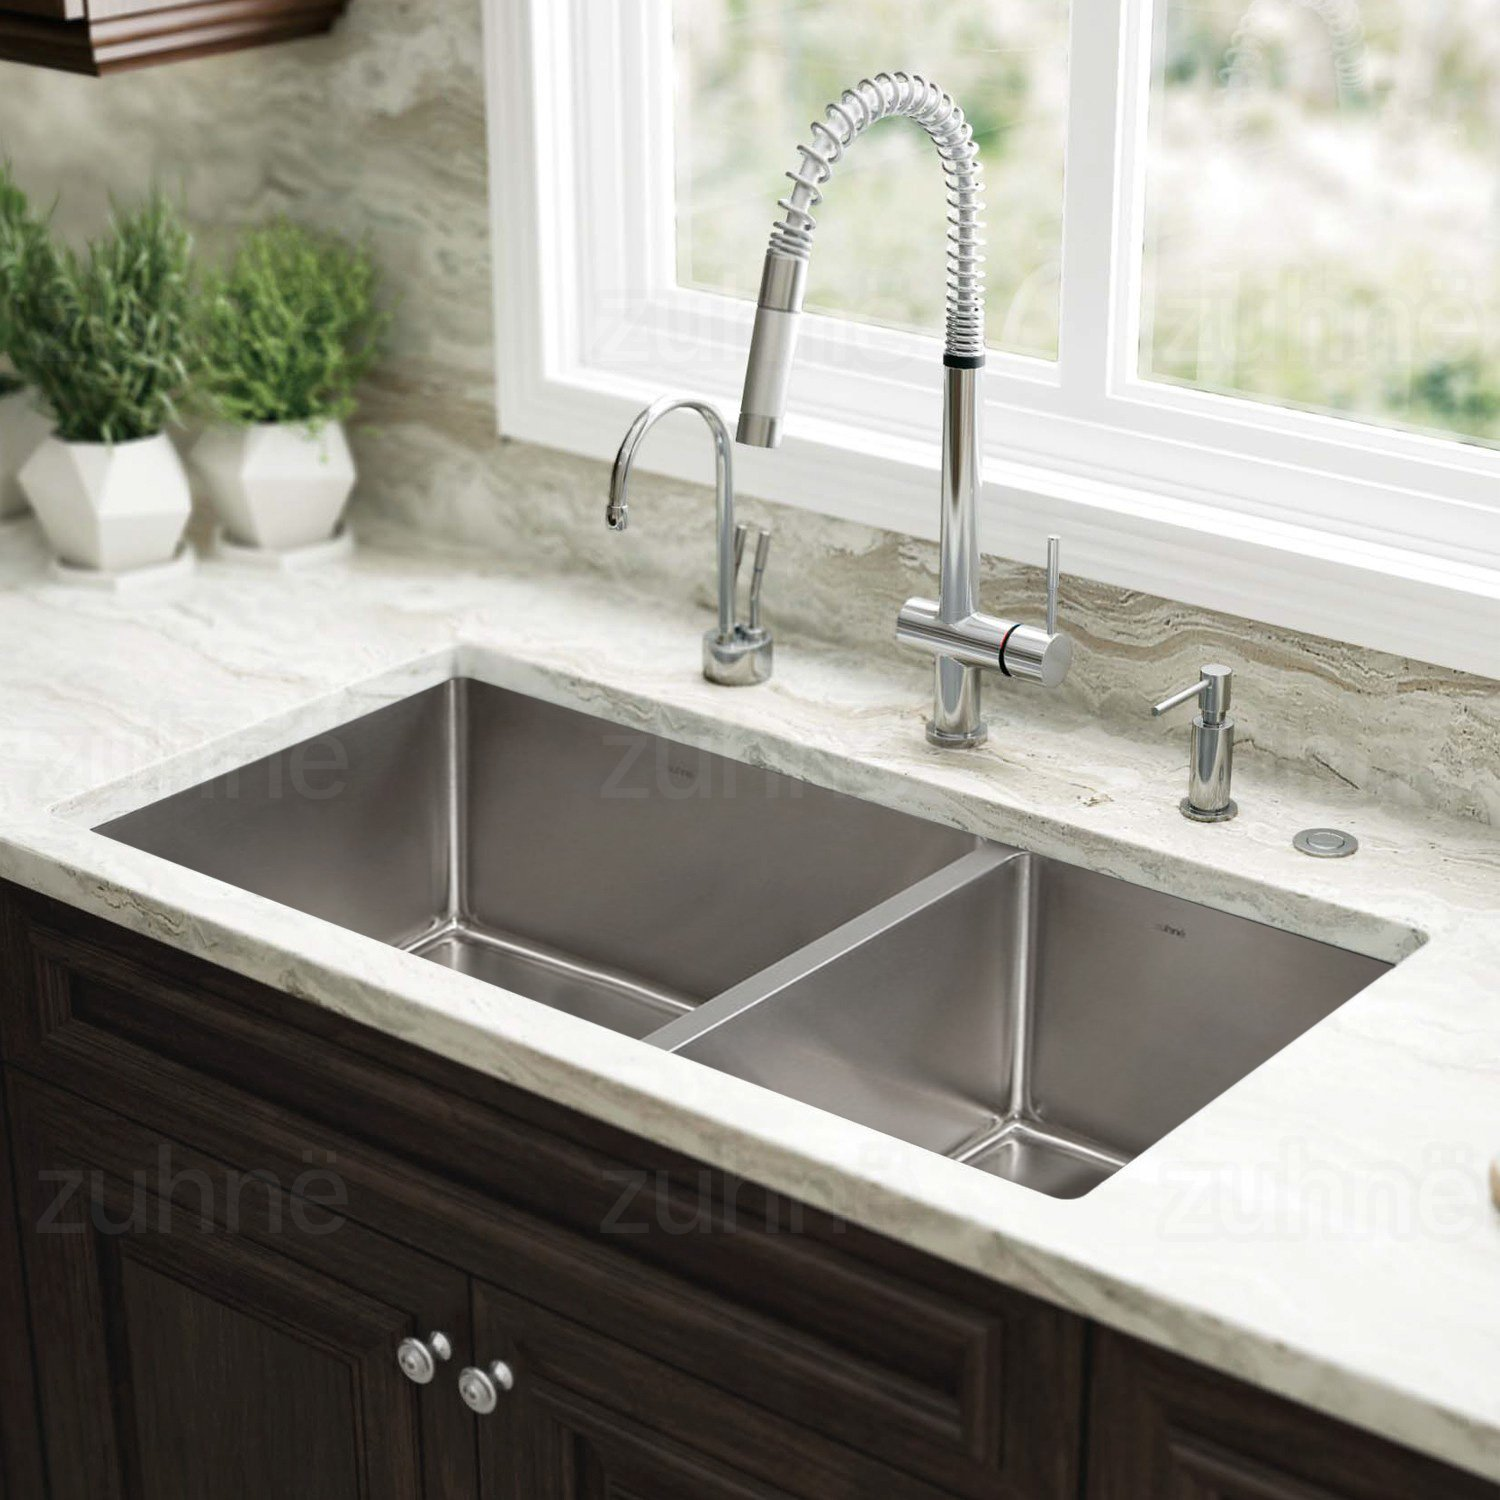 Best Undermount Kitchen Sinks 2018 (list of sinks that doesn\'t suck)